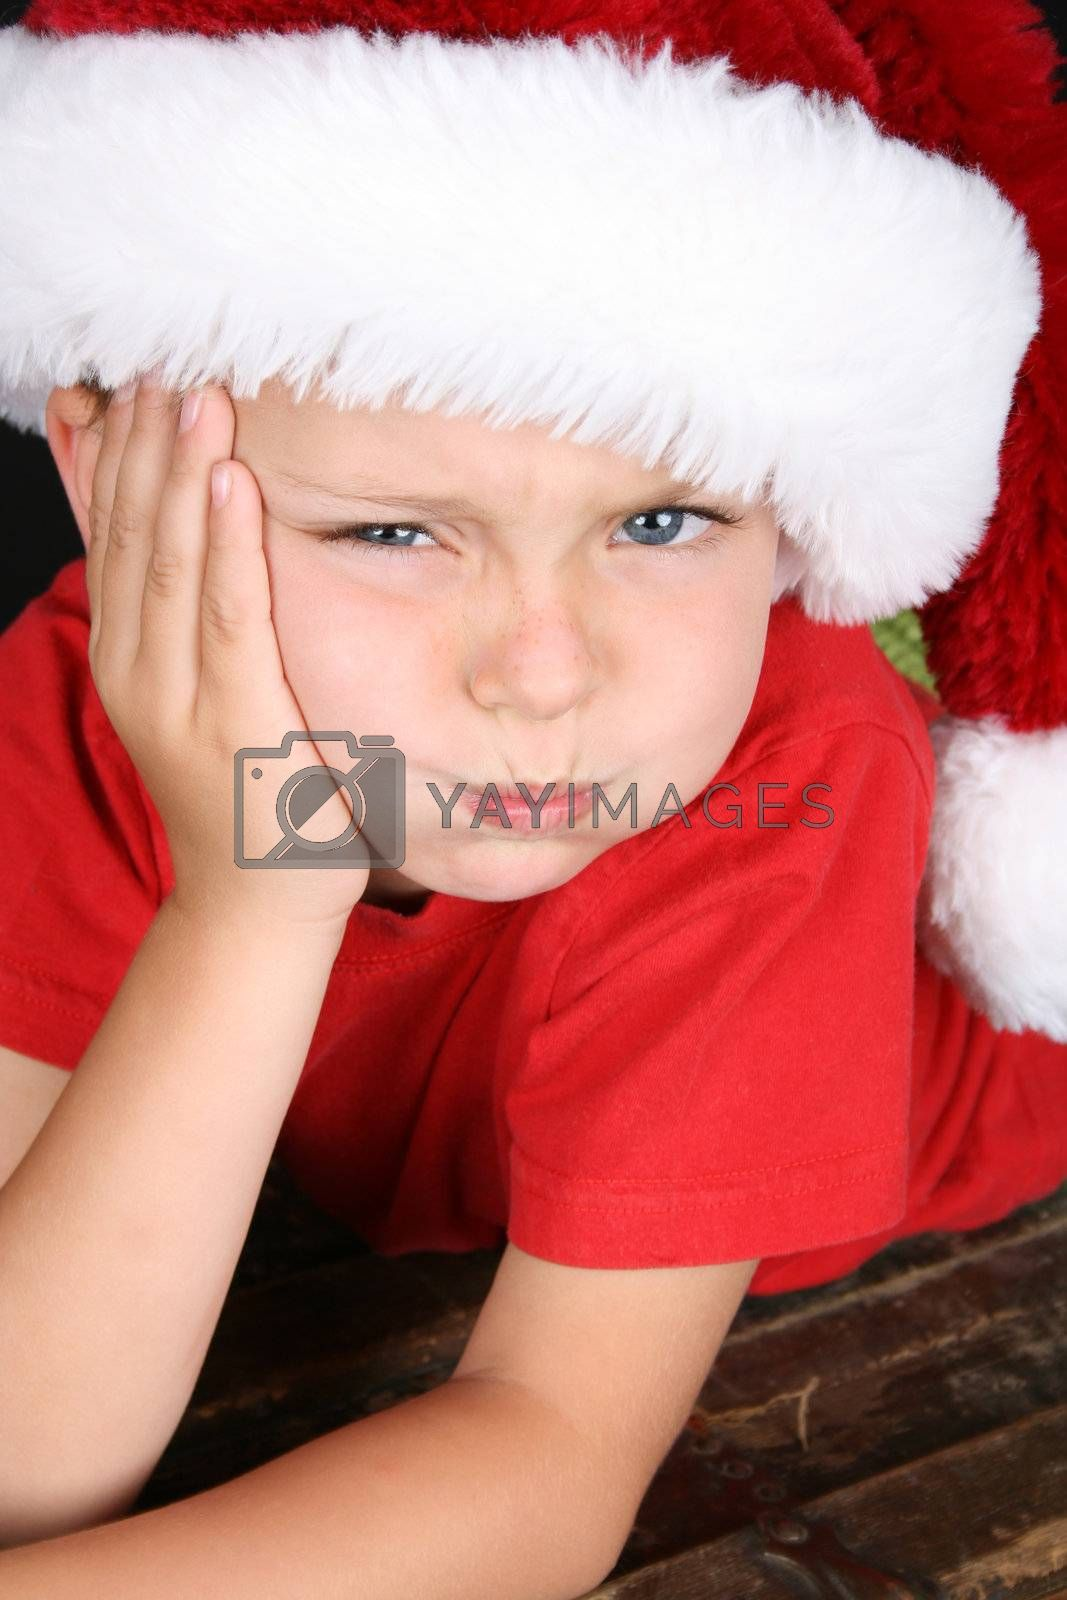 Bored little boy wearing a fluffy Christmas hat